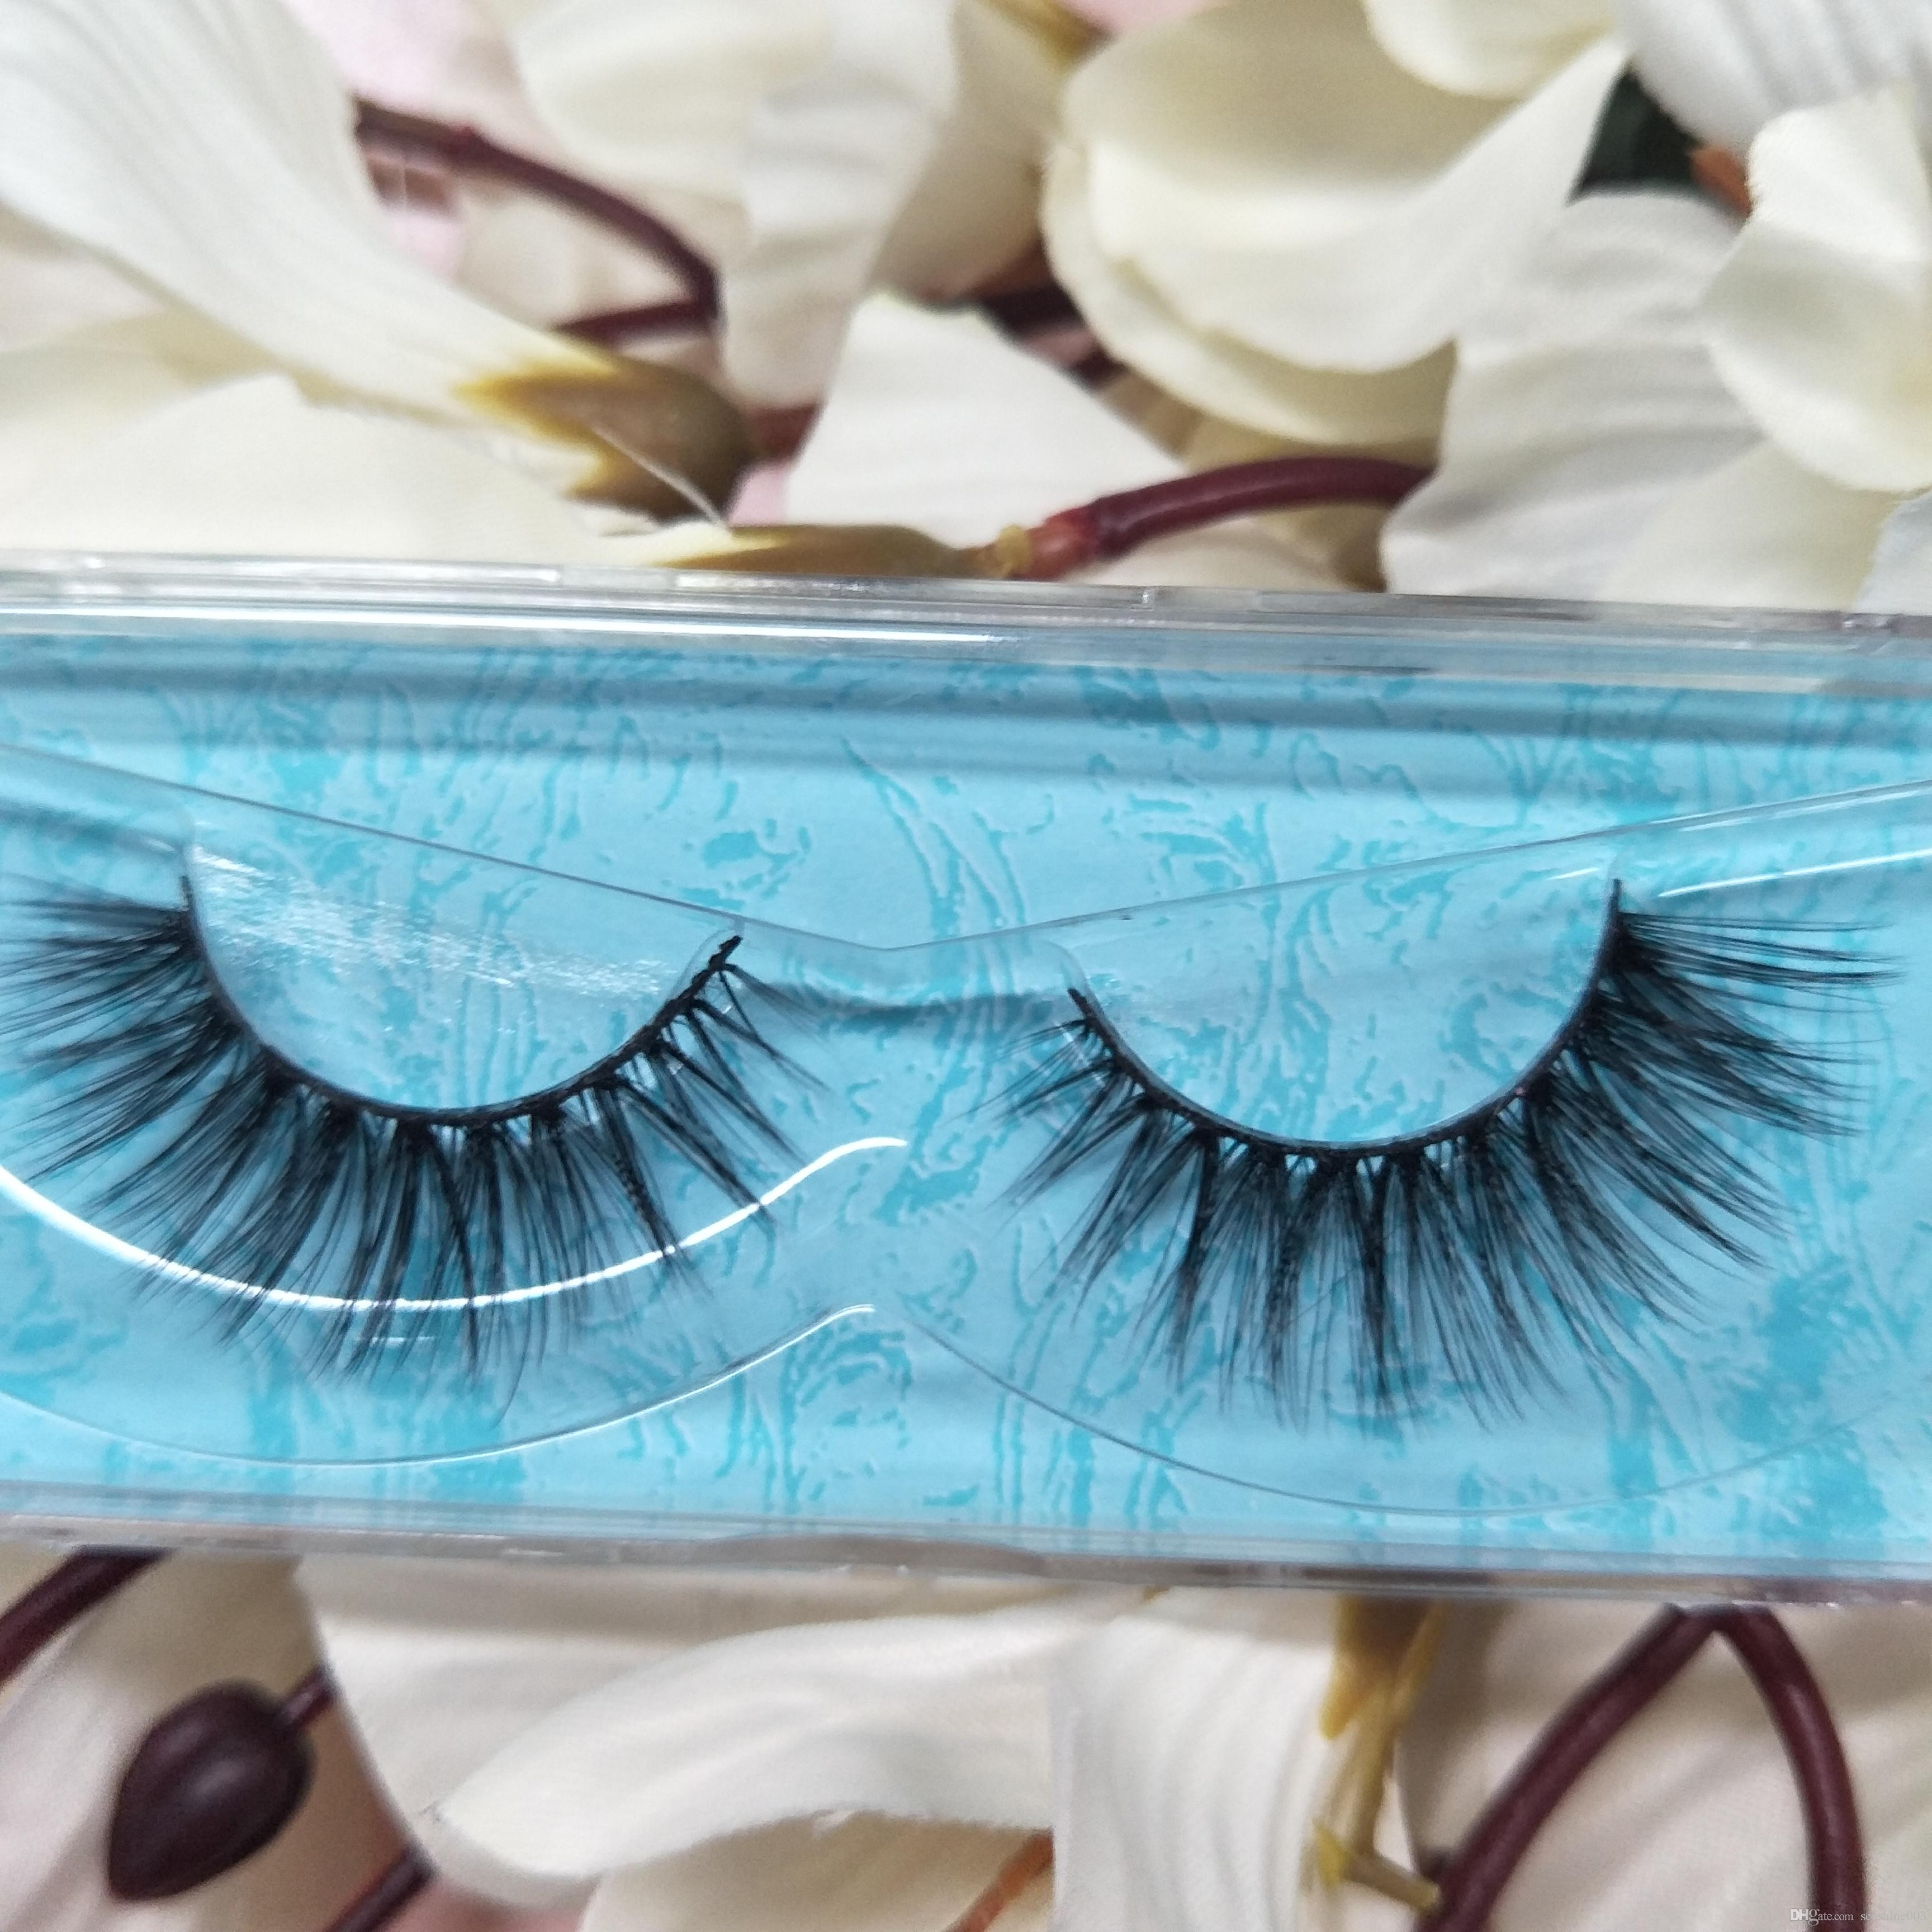 c9787fd9a1d SEASHINE 3D Full Mink Eyelashes Extension 100% Real Mink Fur 16 Style Eye  Lahses Natural Long Strip Eyelashes Car Eyelashes Fake Lashes From  Seashine003, ...